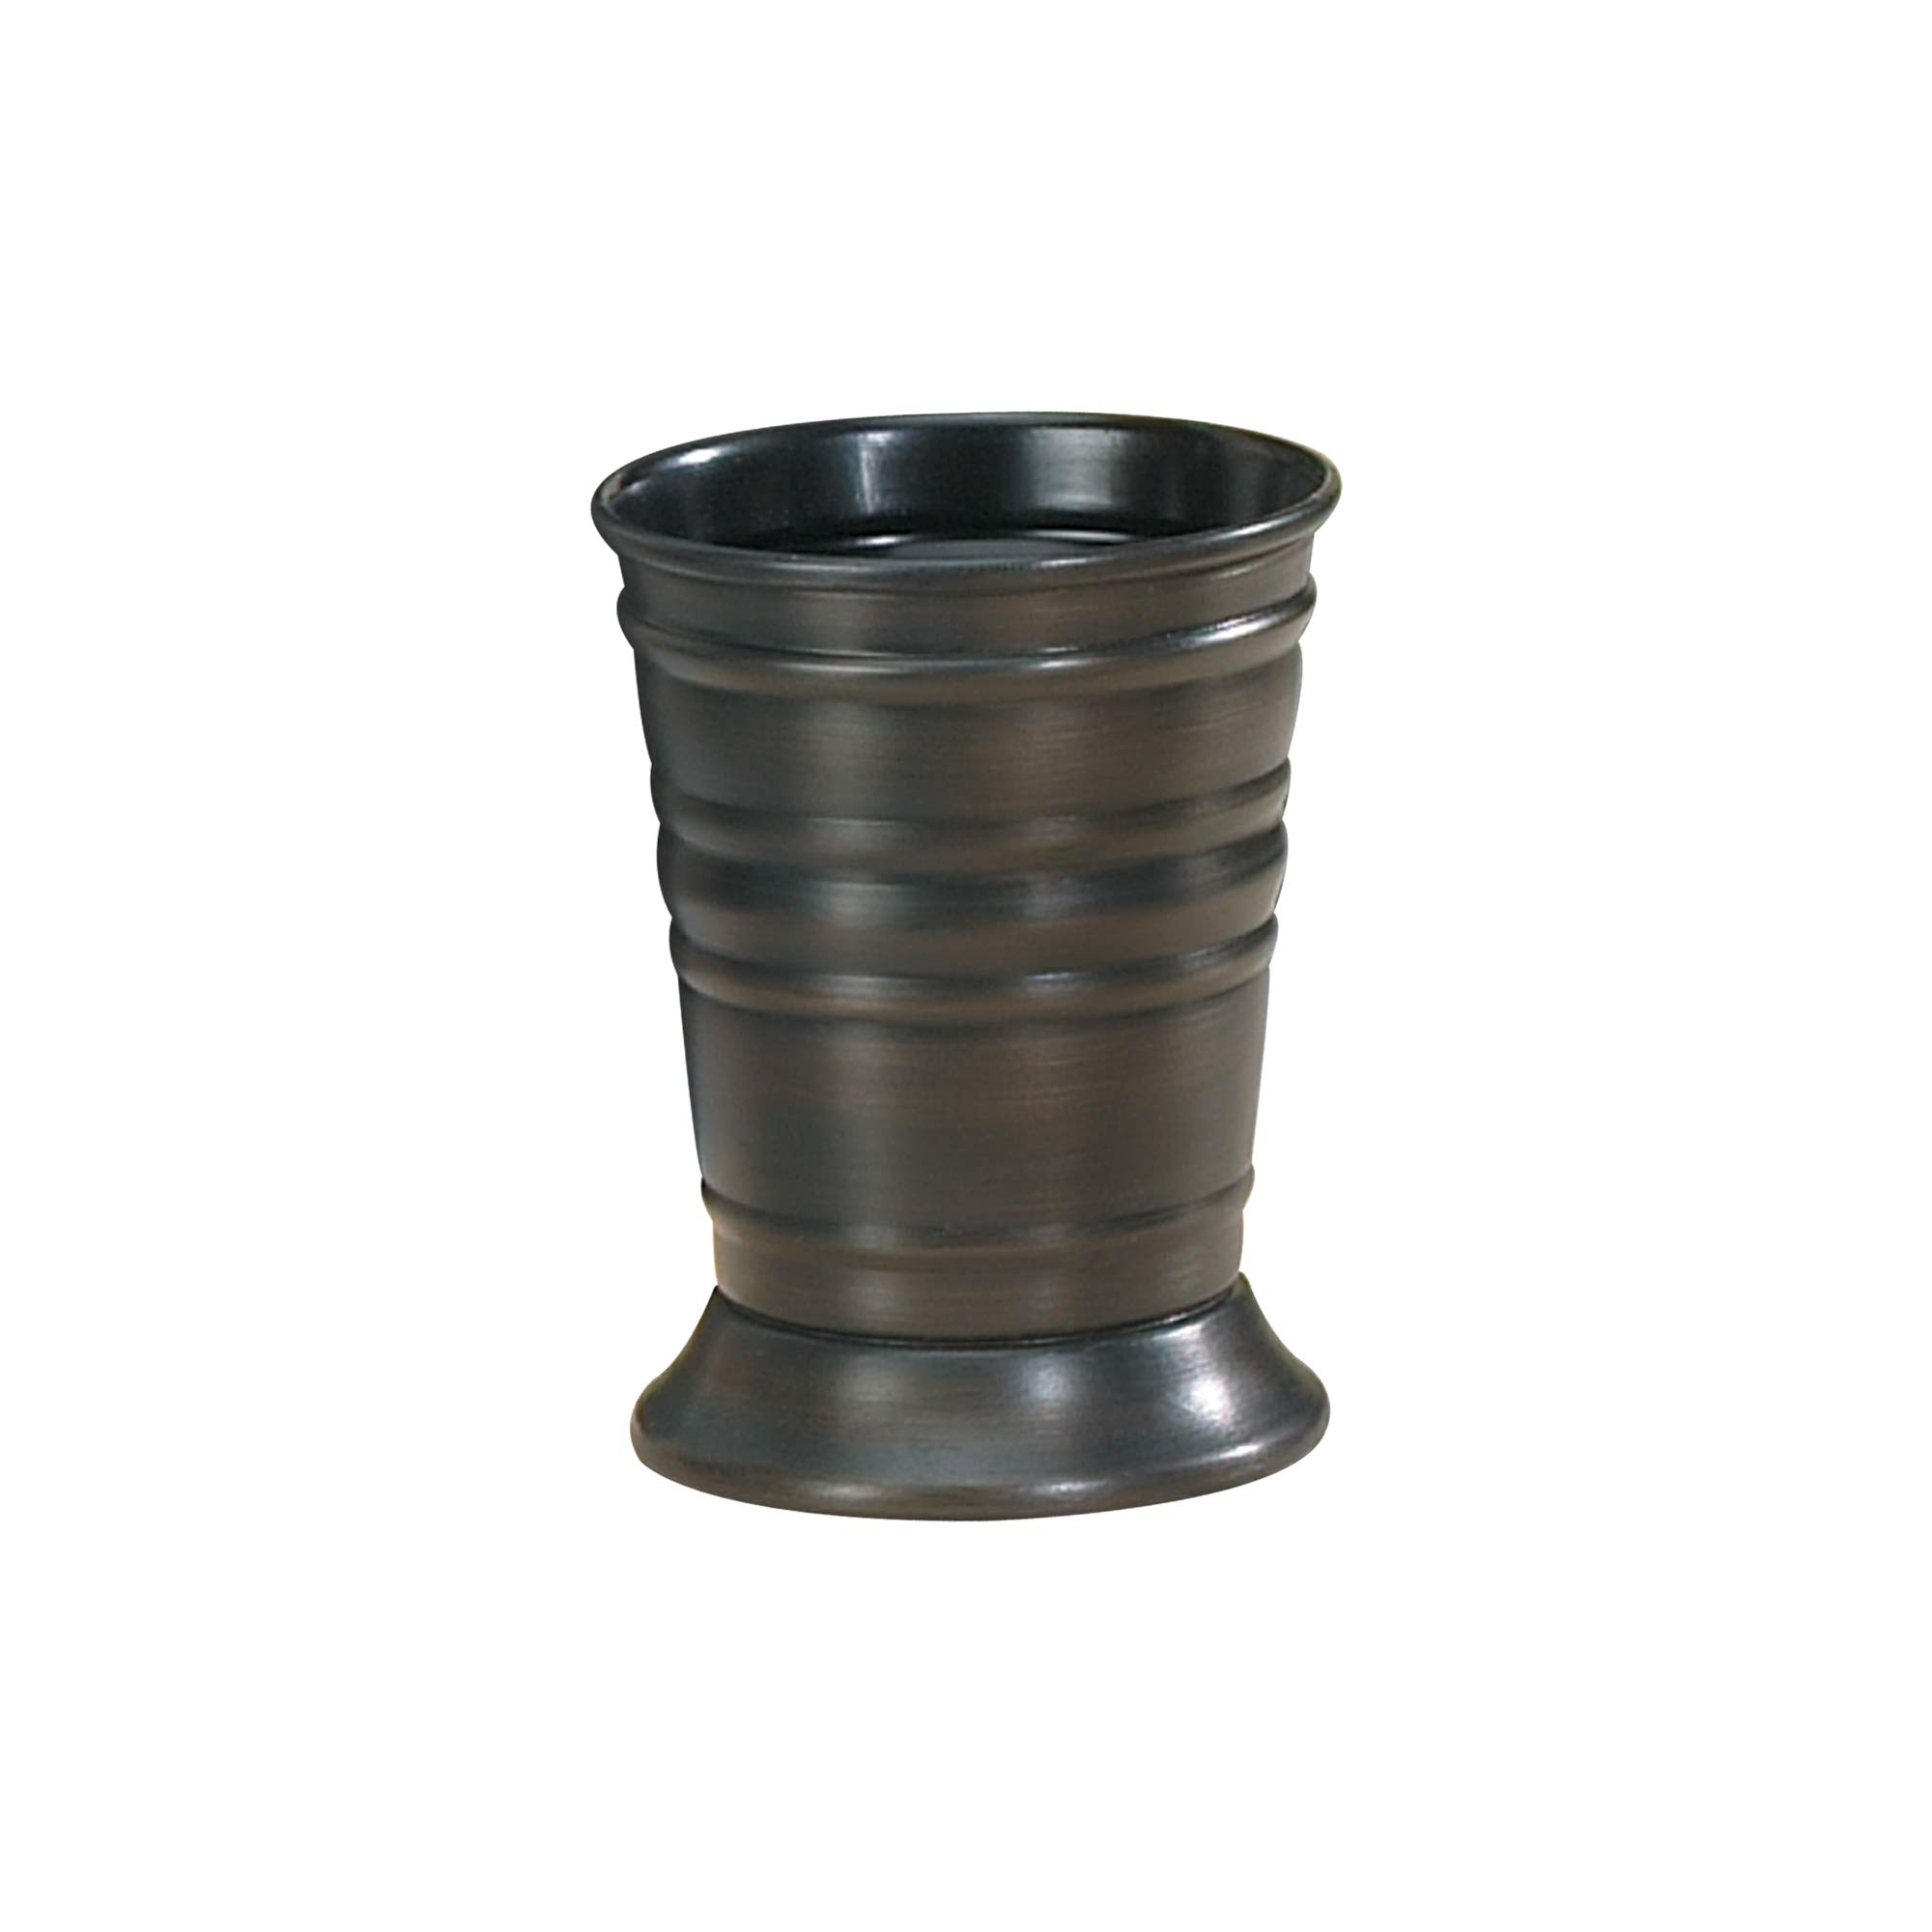 nu steel Bogart Collection Decorative Makeup Brush Cup Holder Tumblers for Bathroom Countertops, Desk, Dorm, and Vanity ORB Finish by nu steel